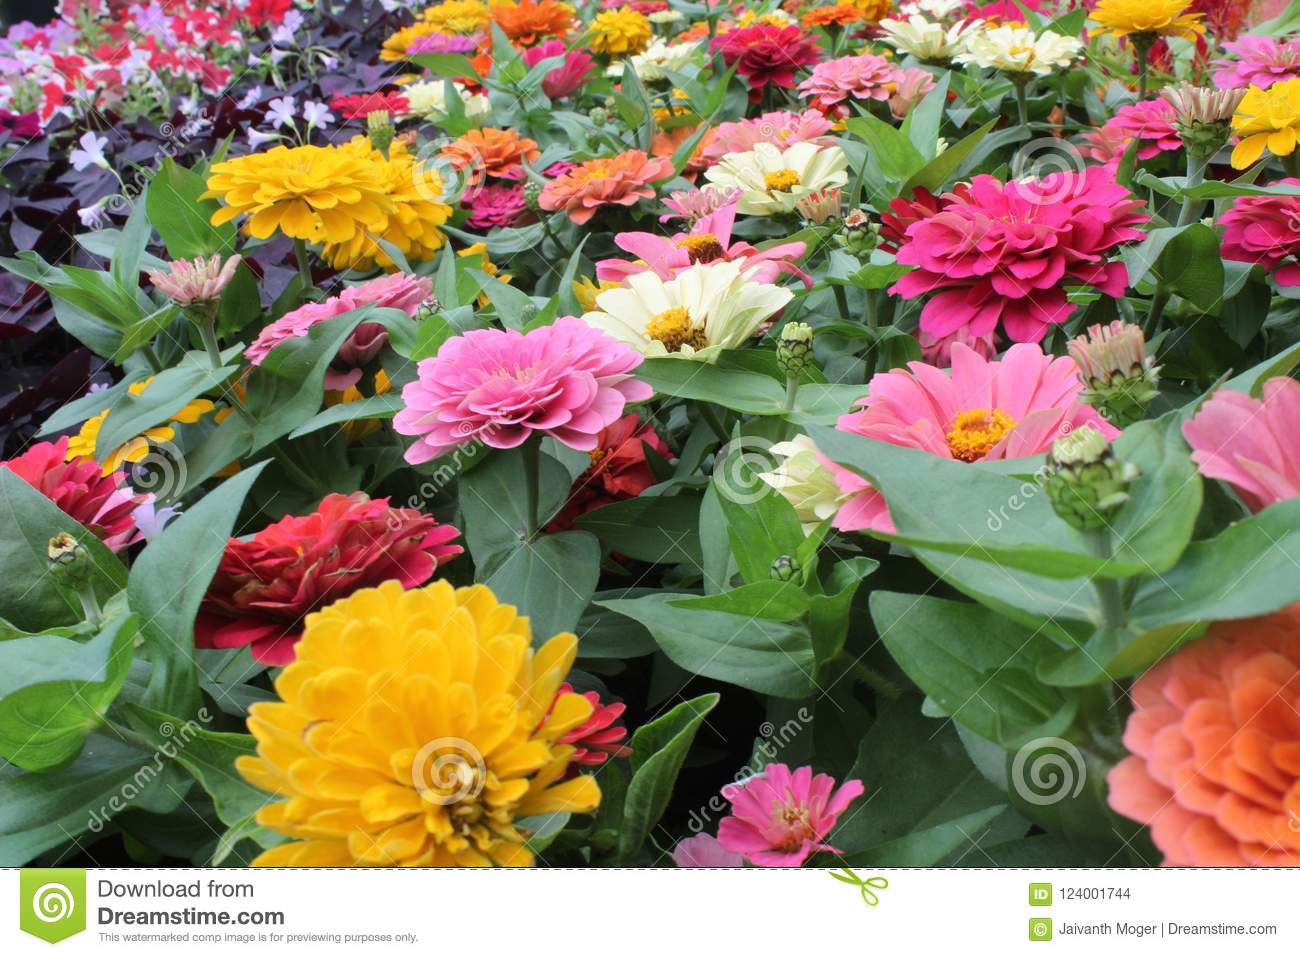 Different type of flowers image stock photo image of desktop download different type of flowers image stock photo image of desktop wallpaper 124001744 izmirmasajfo